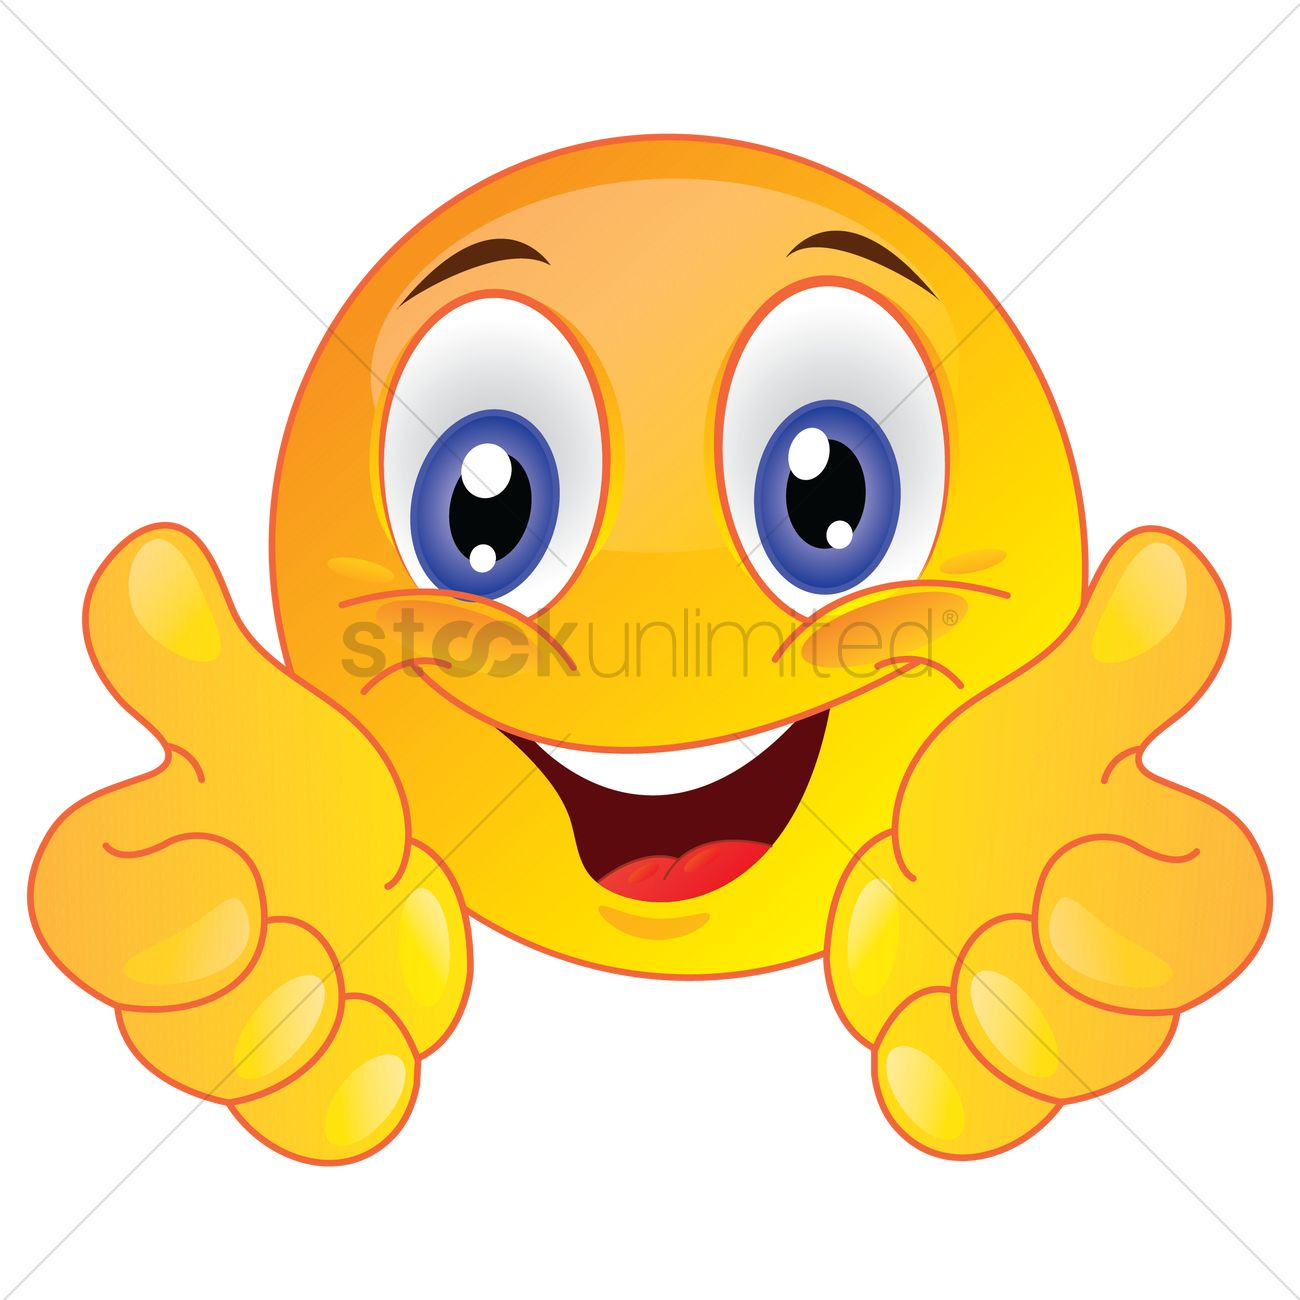 Smiley face thumbs up clipart jpg freeuse download Cartoon chicken with a thumbs up Vector Image - 1514989 ... jpg freeuse download